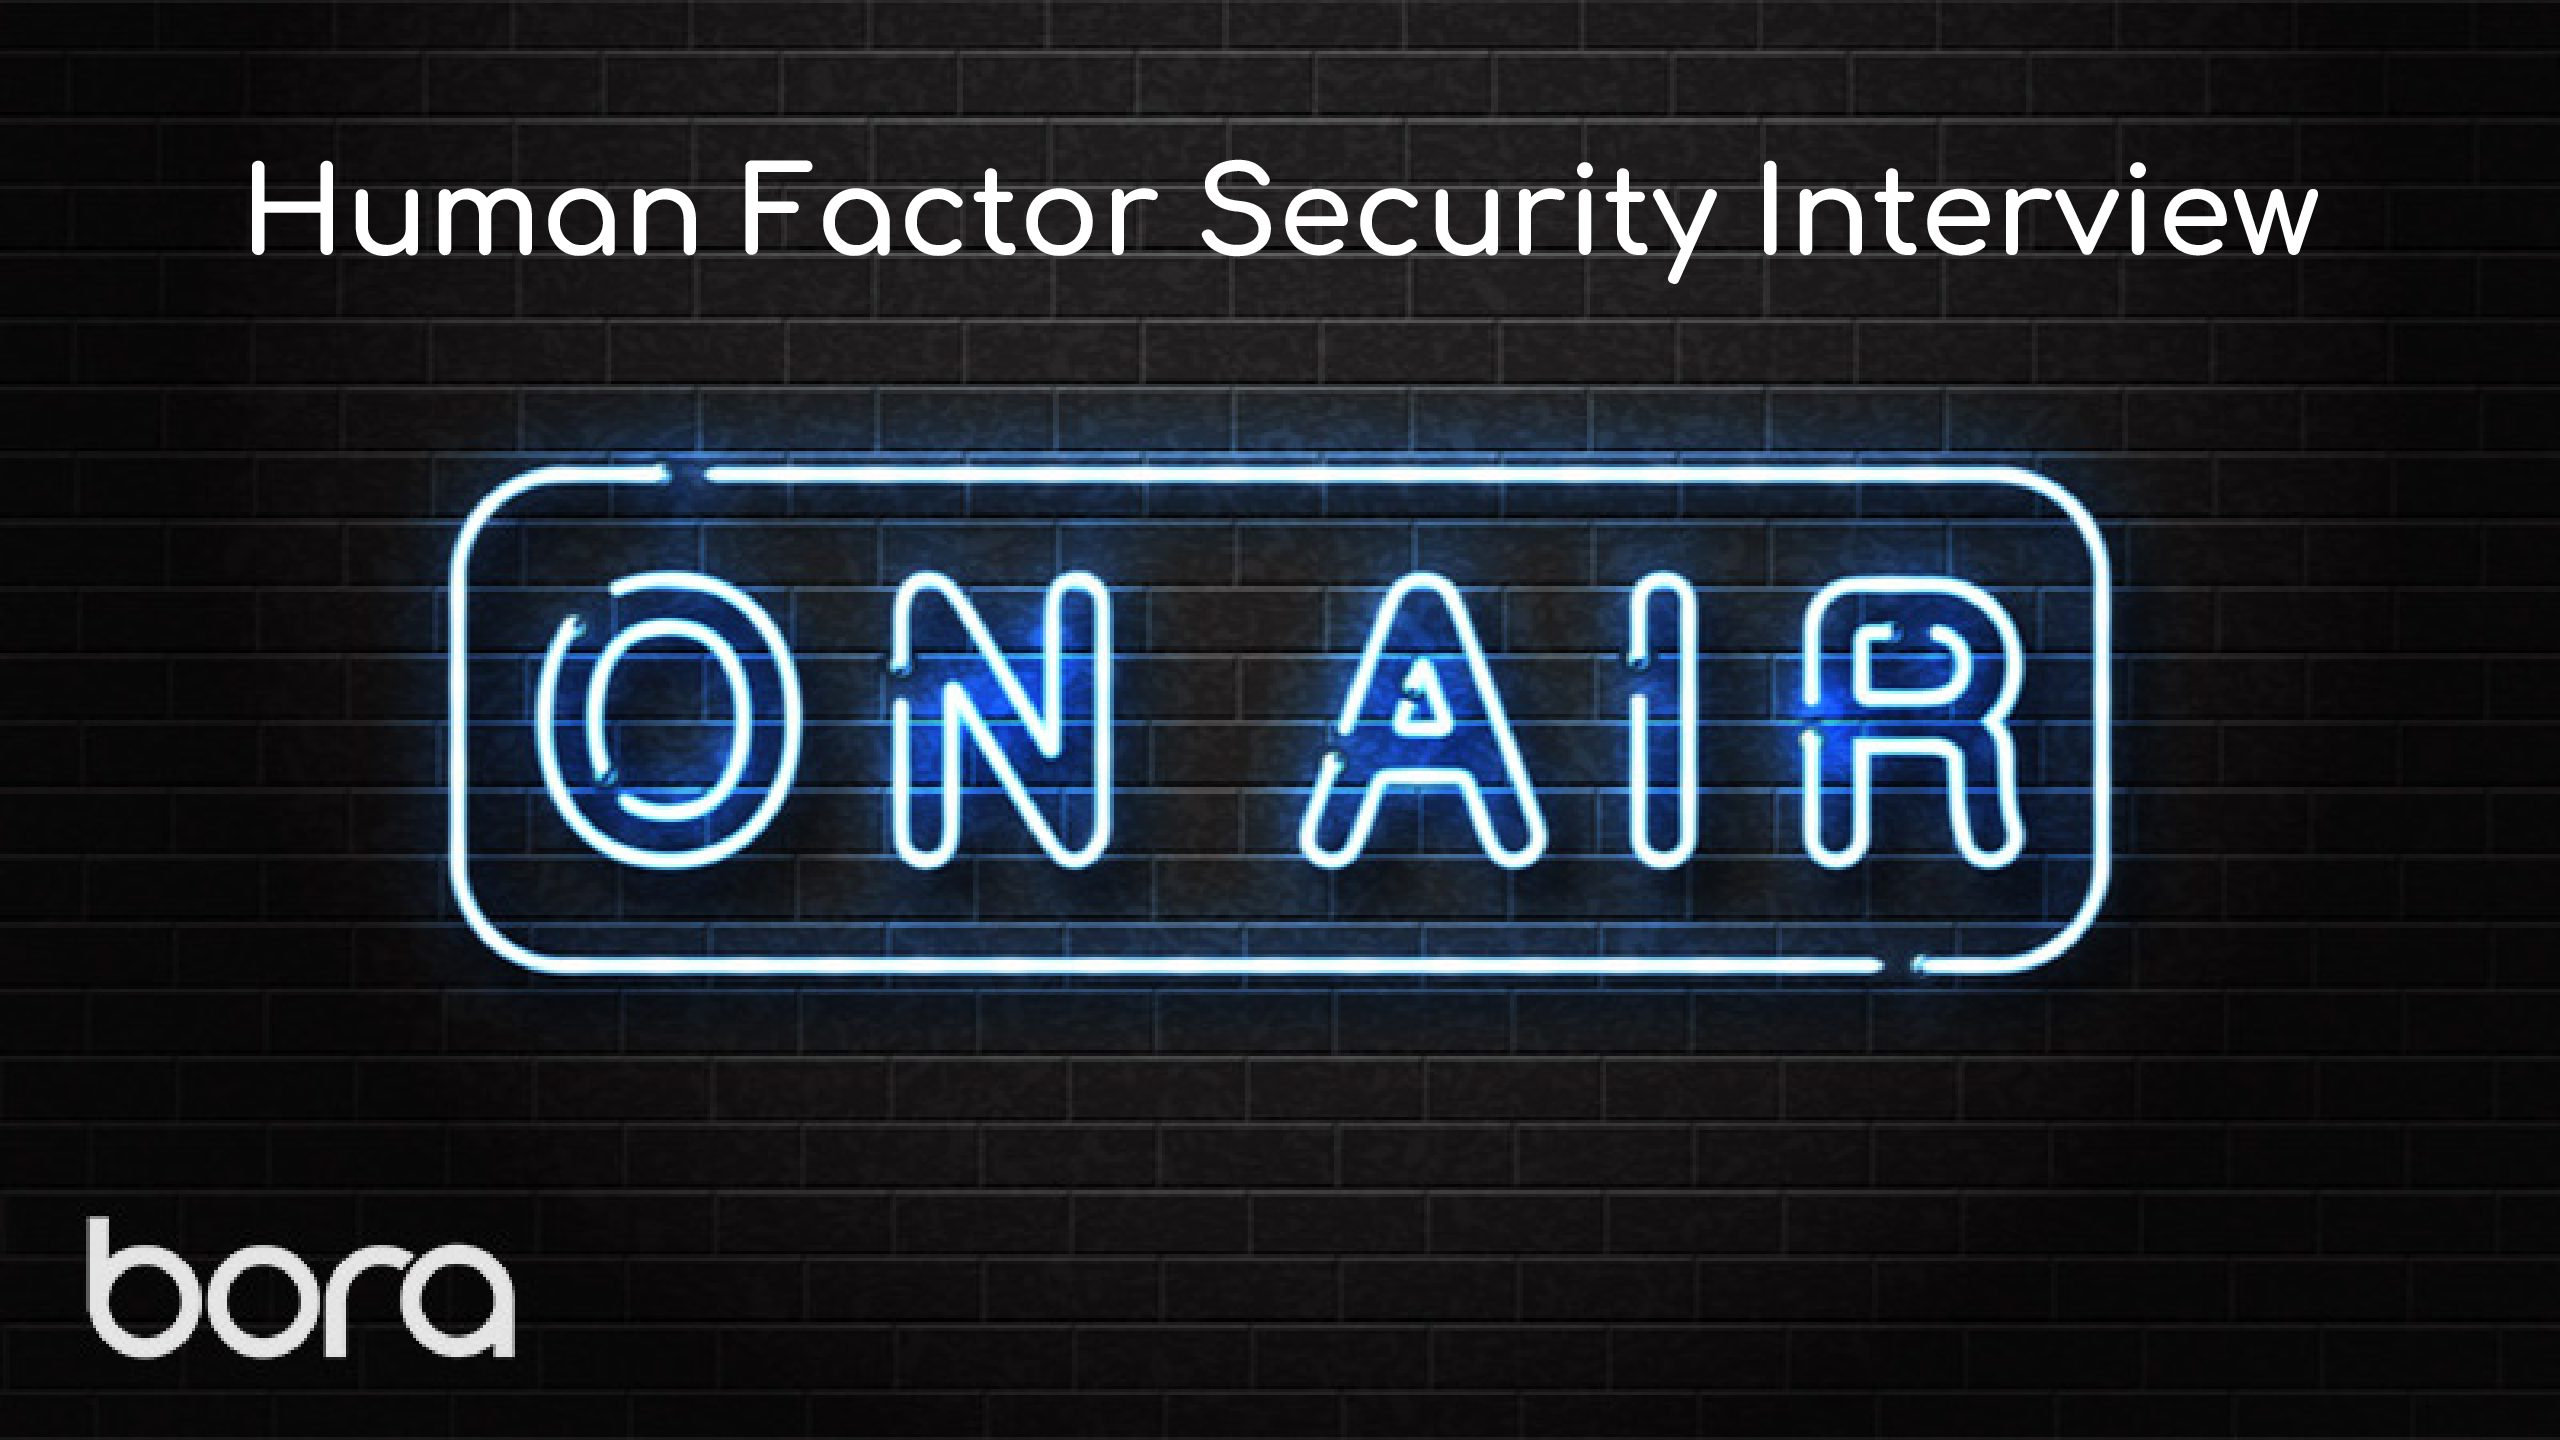 Joe Pettit Interviewed on The Human Factor Security Podcast